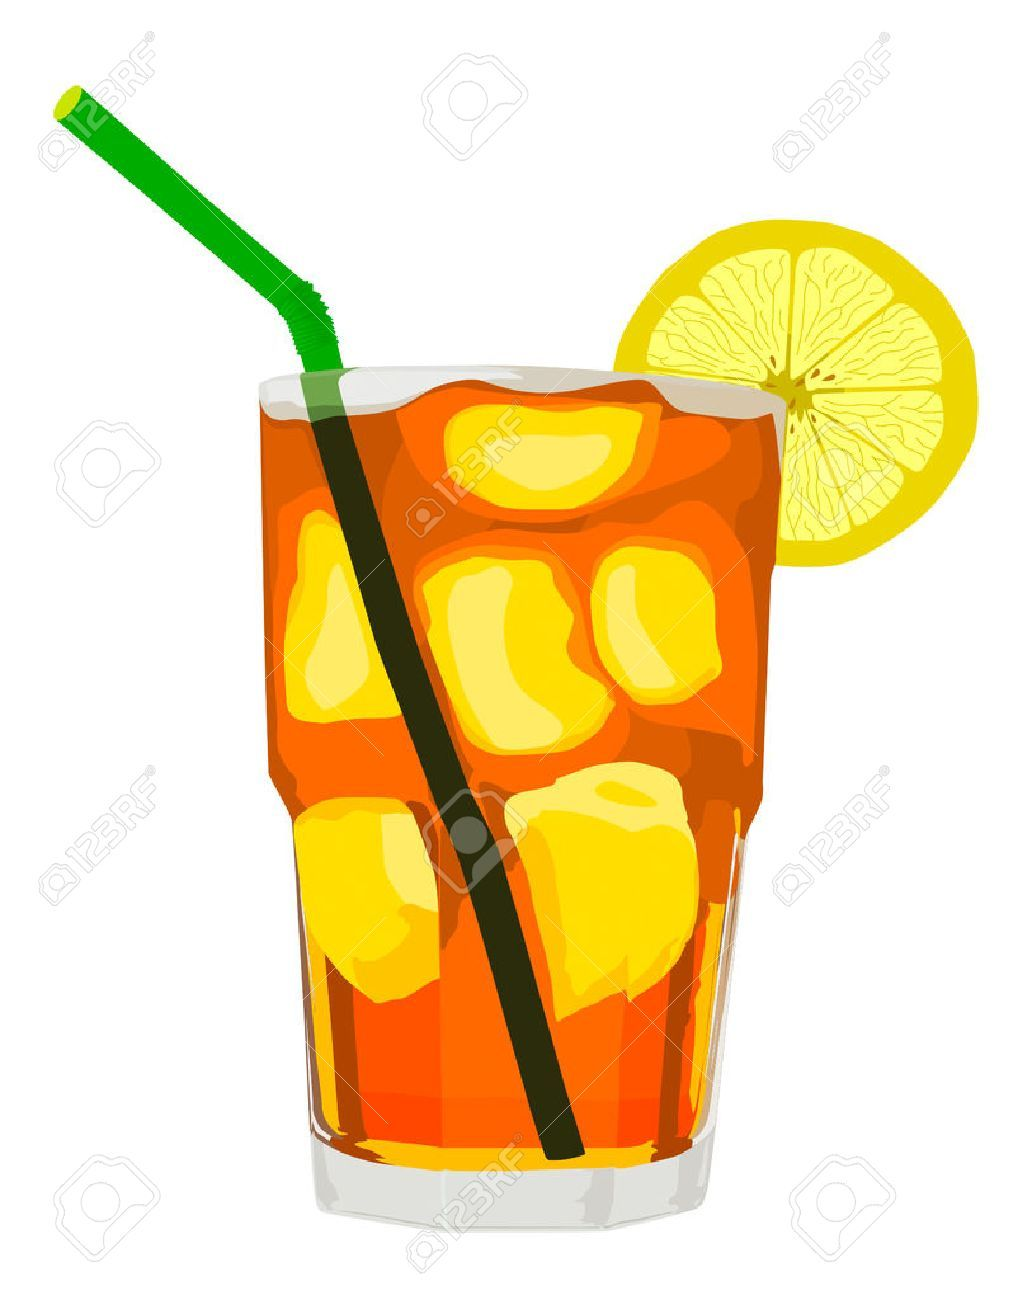 Iced tea clipart graphic black and white Ice tea clipart 5 » Clipart Portal graphic black and white